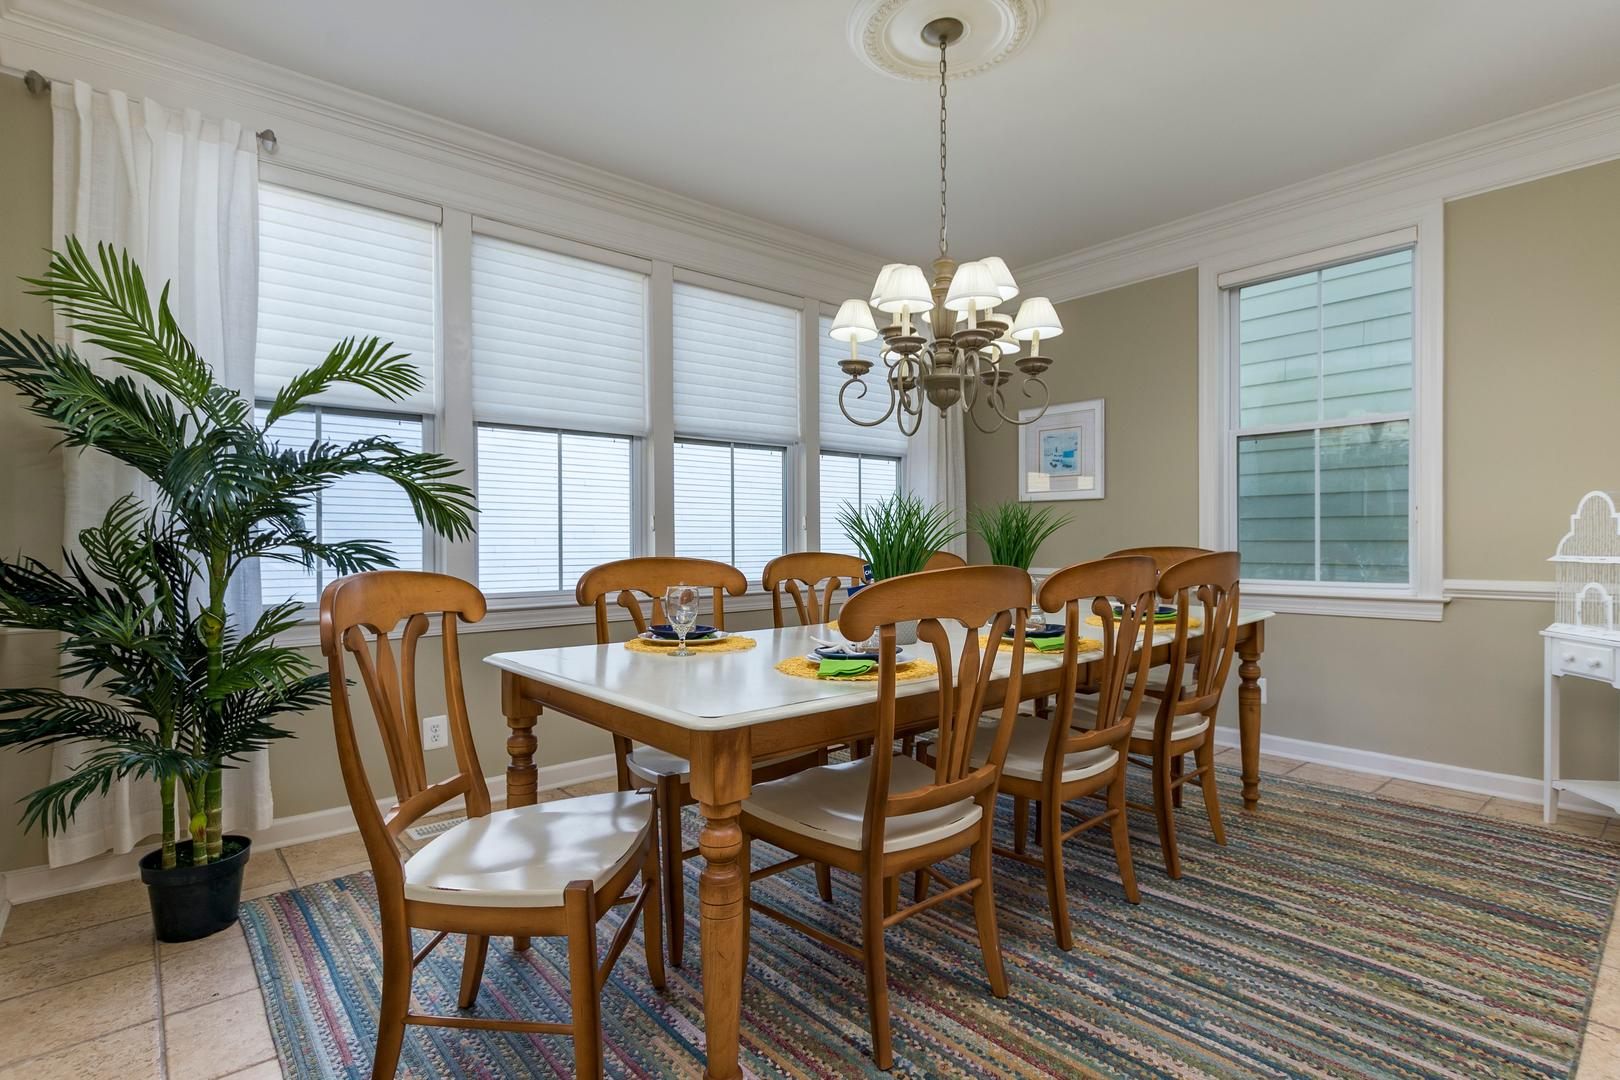 Sunset Island 12 Shore Point Dr. - 2nd Floor Dining